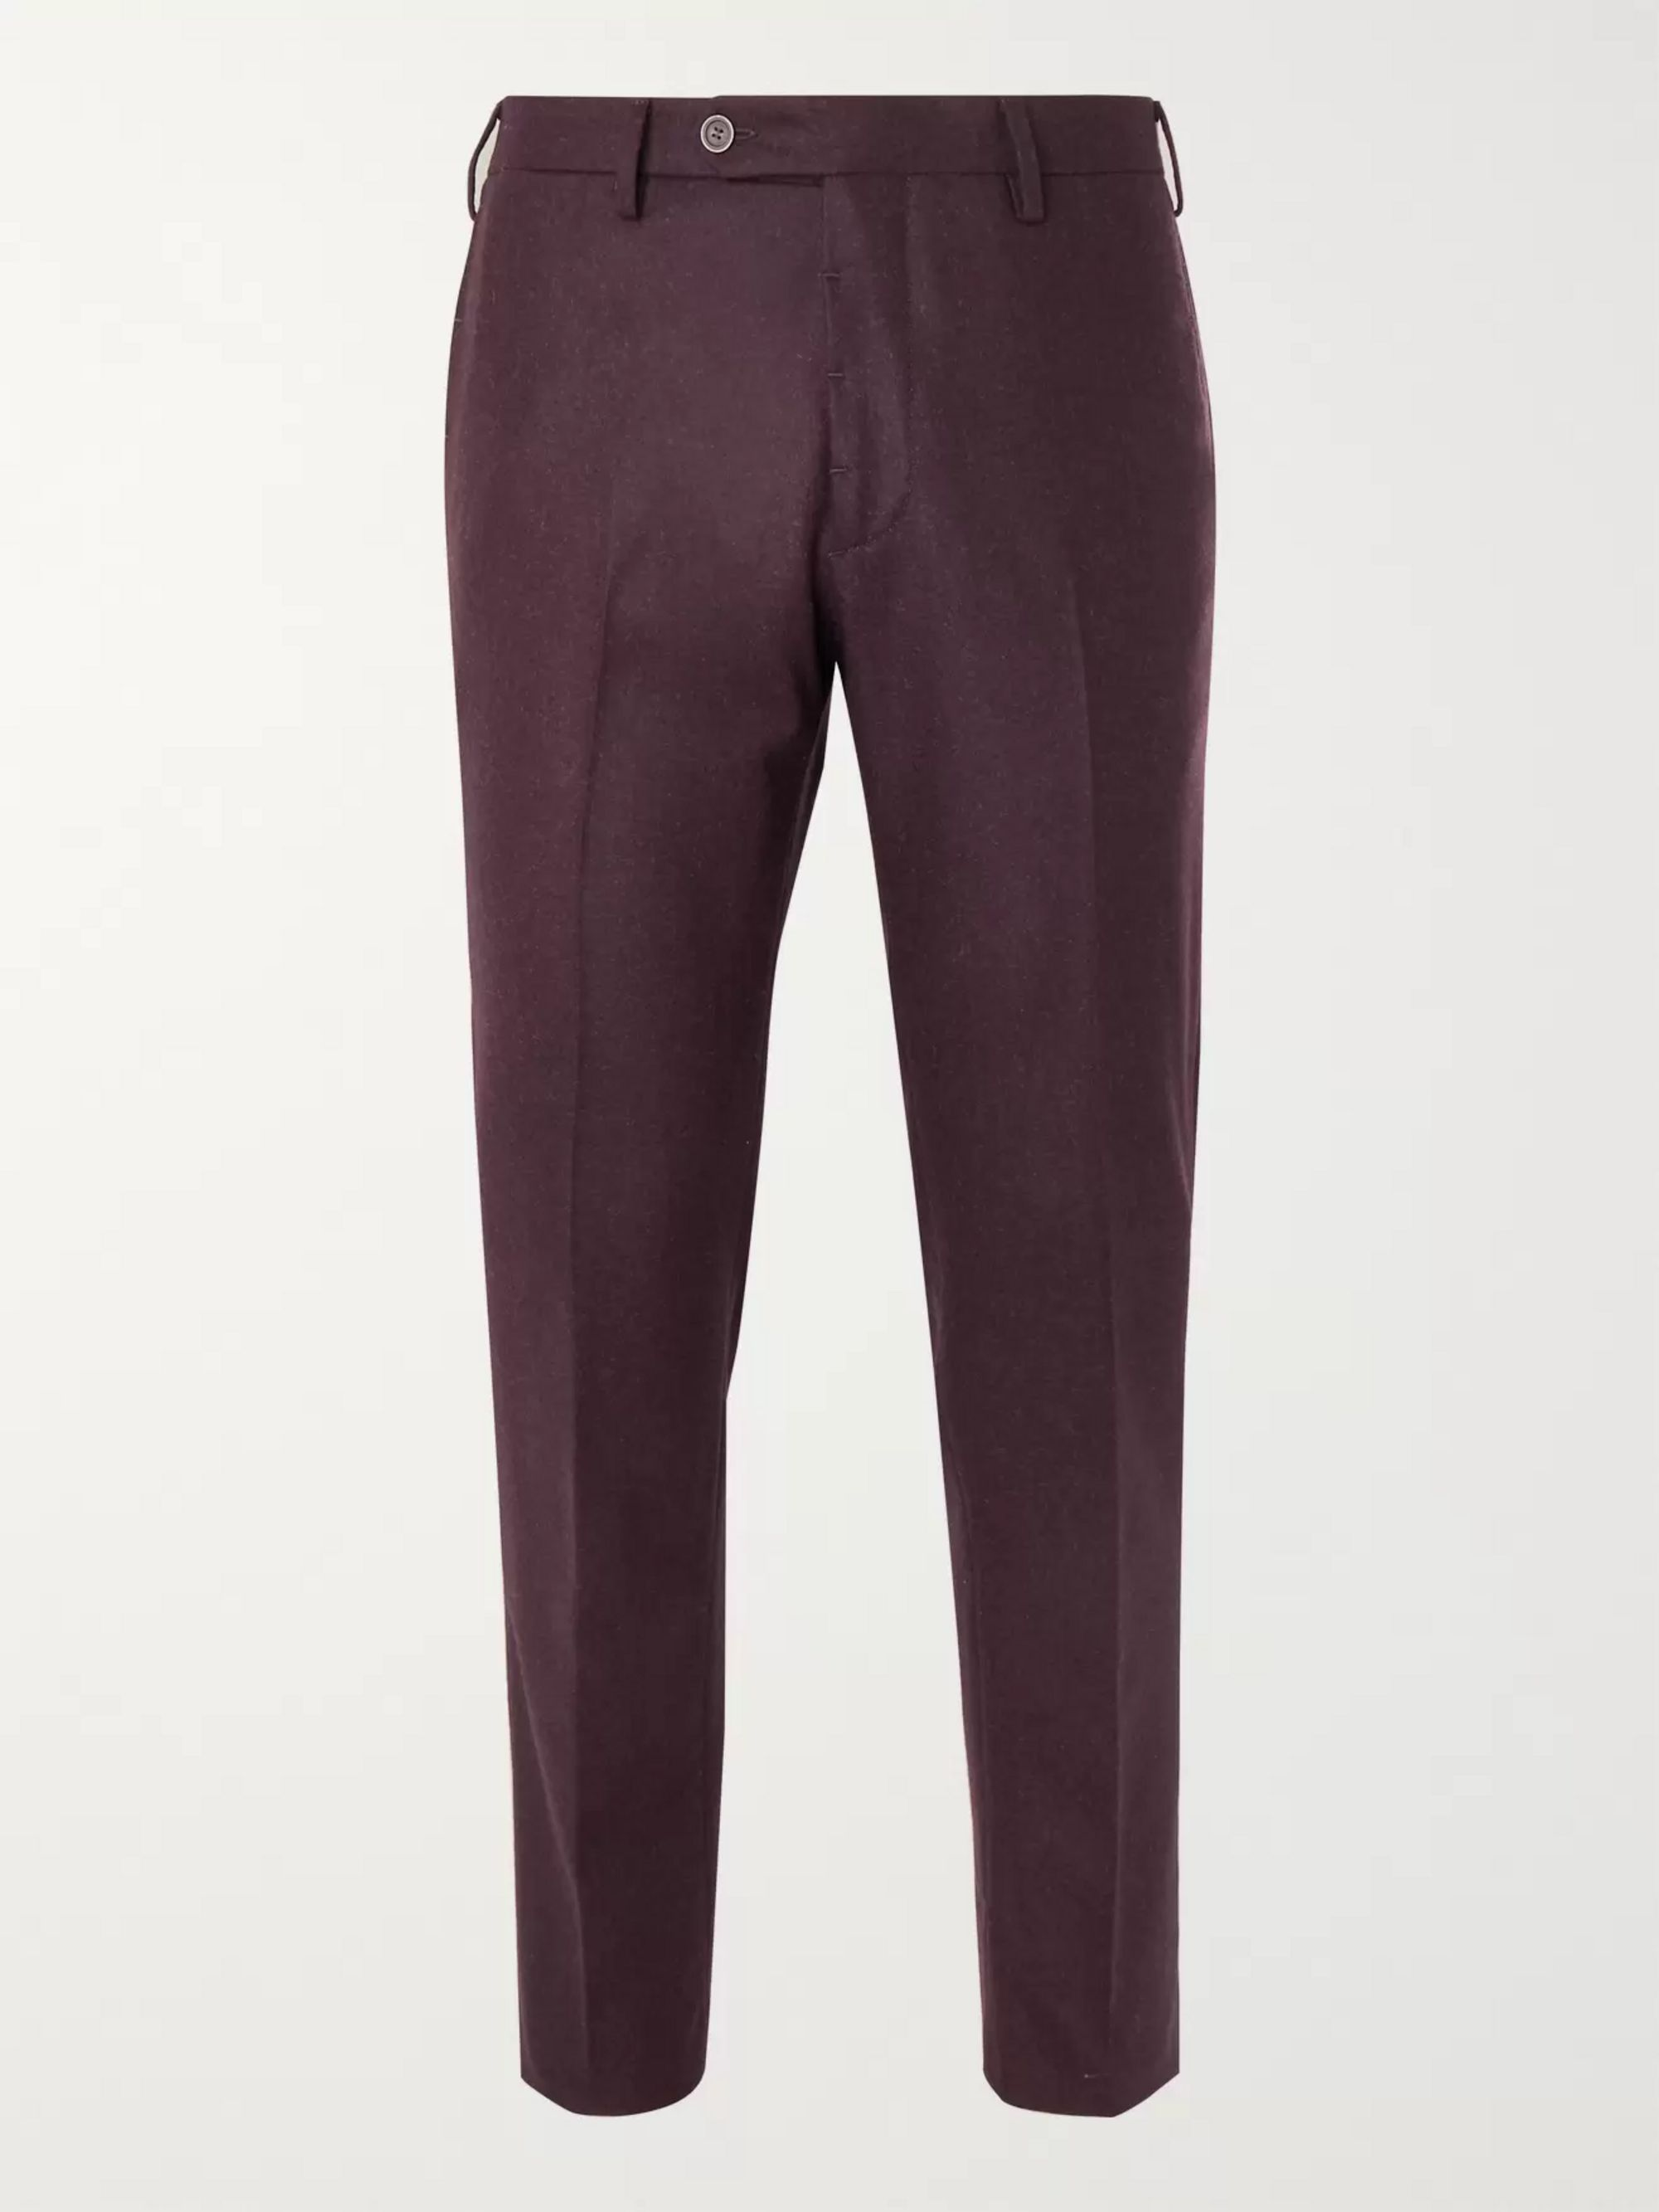 Lardini Skinny-Fit Wool Trousers